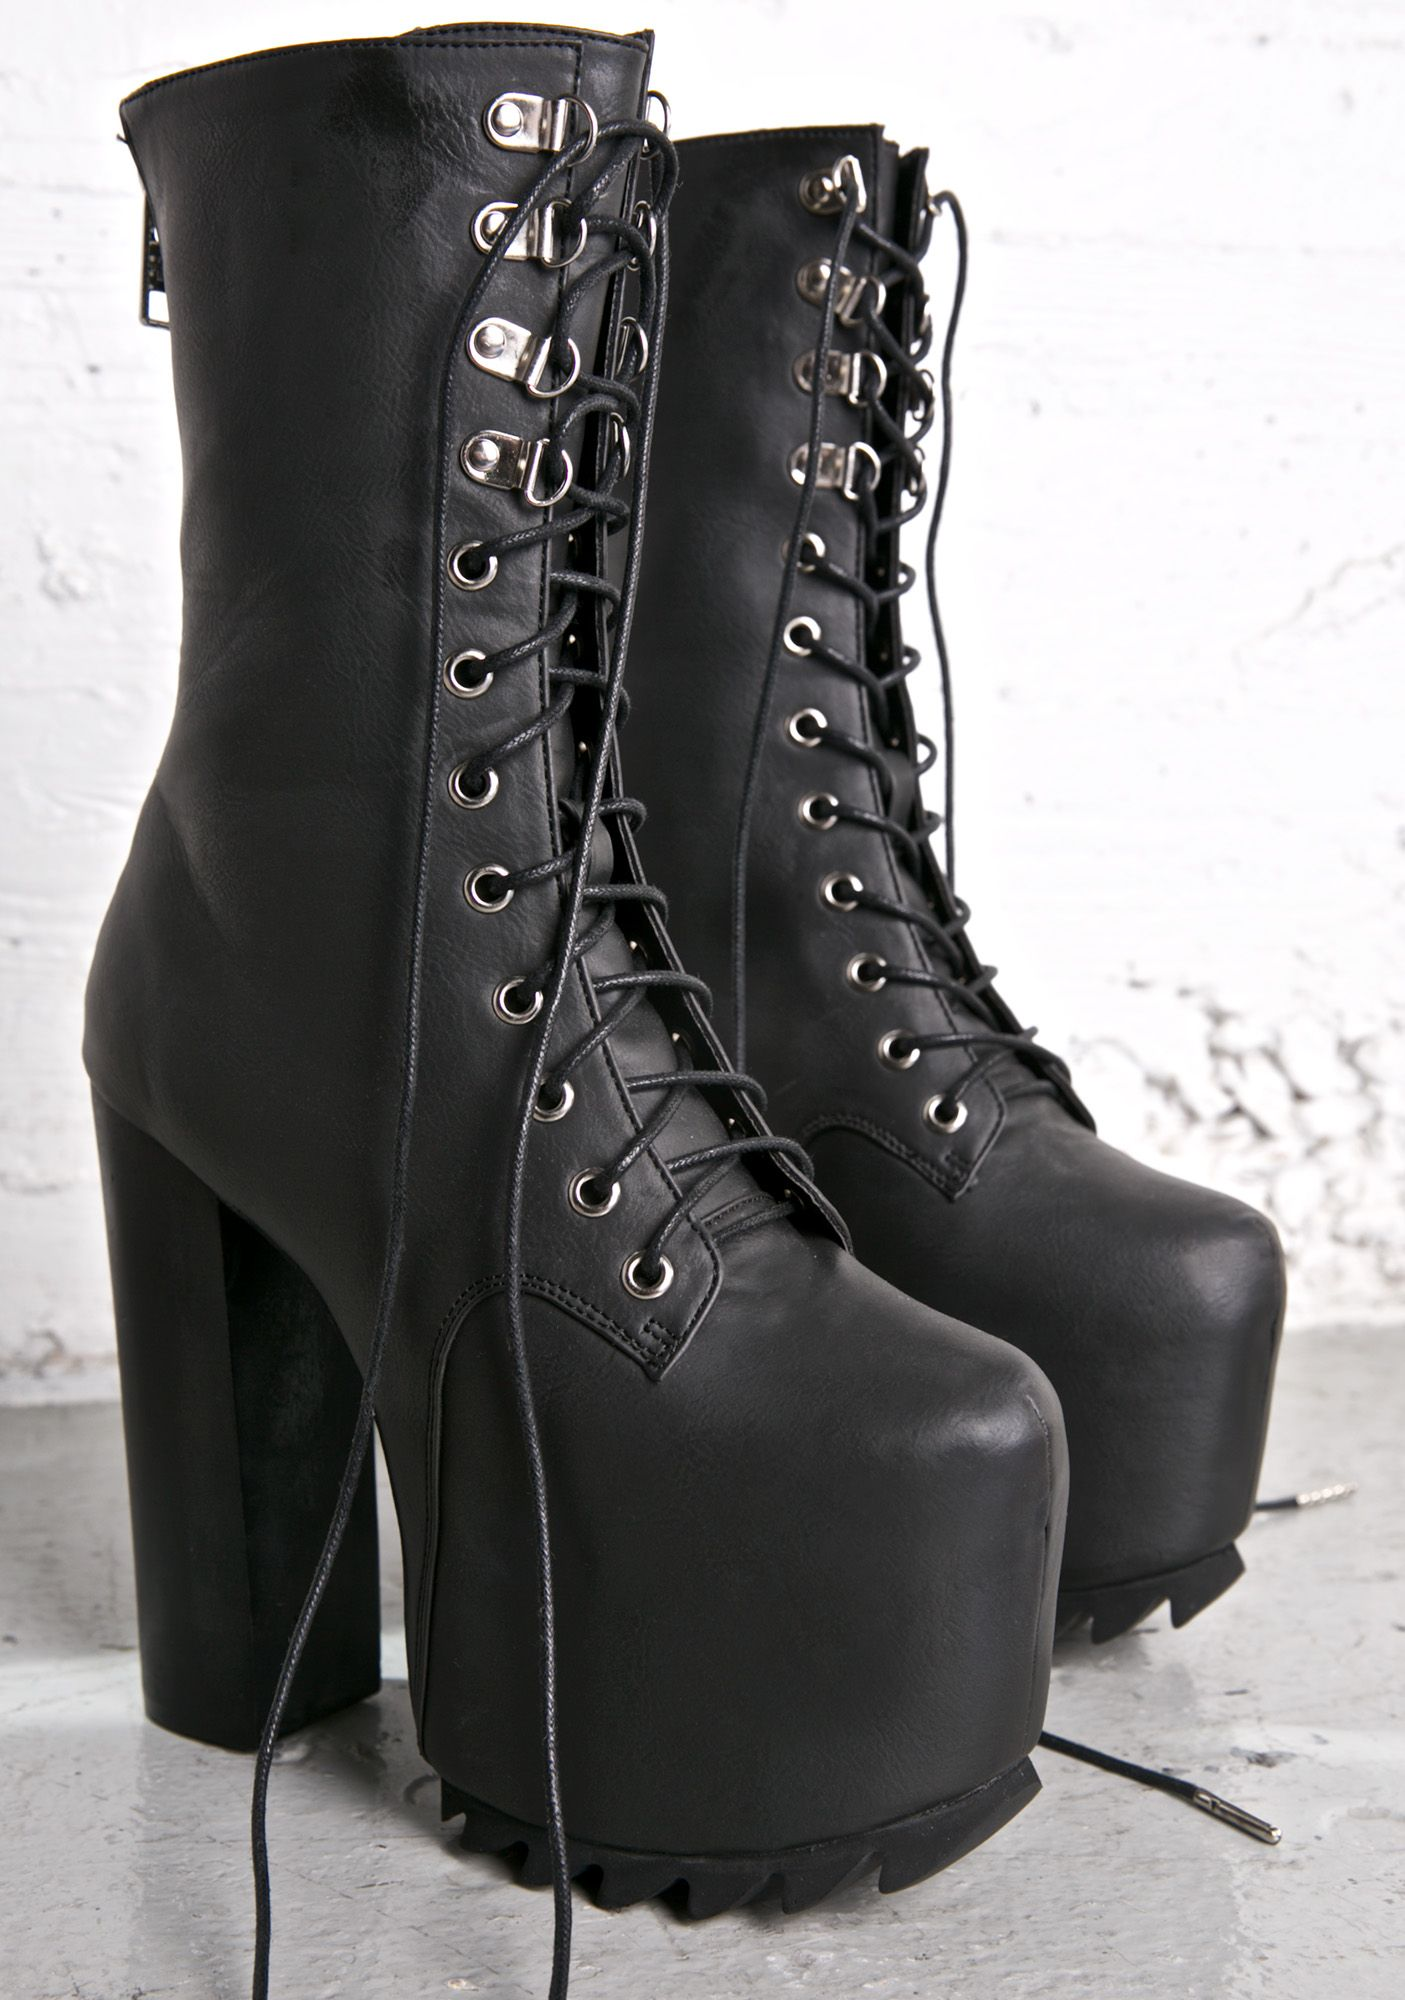 0586eb266ca6 Current Mood Nola Boots - I Want it Black  goth  gothboots  platformboots